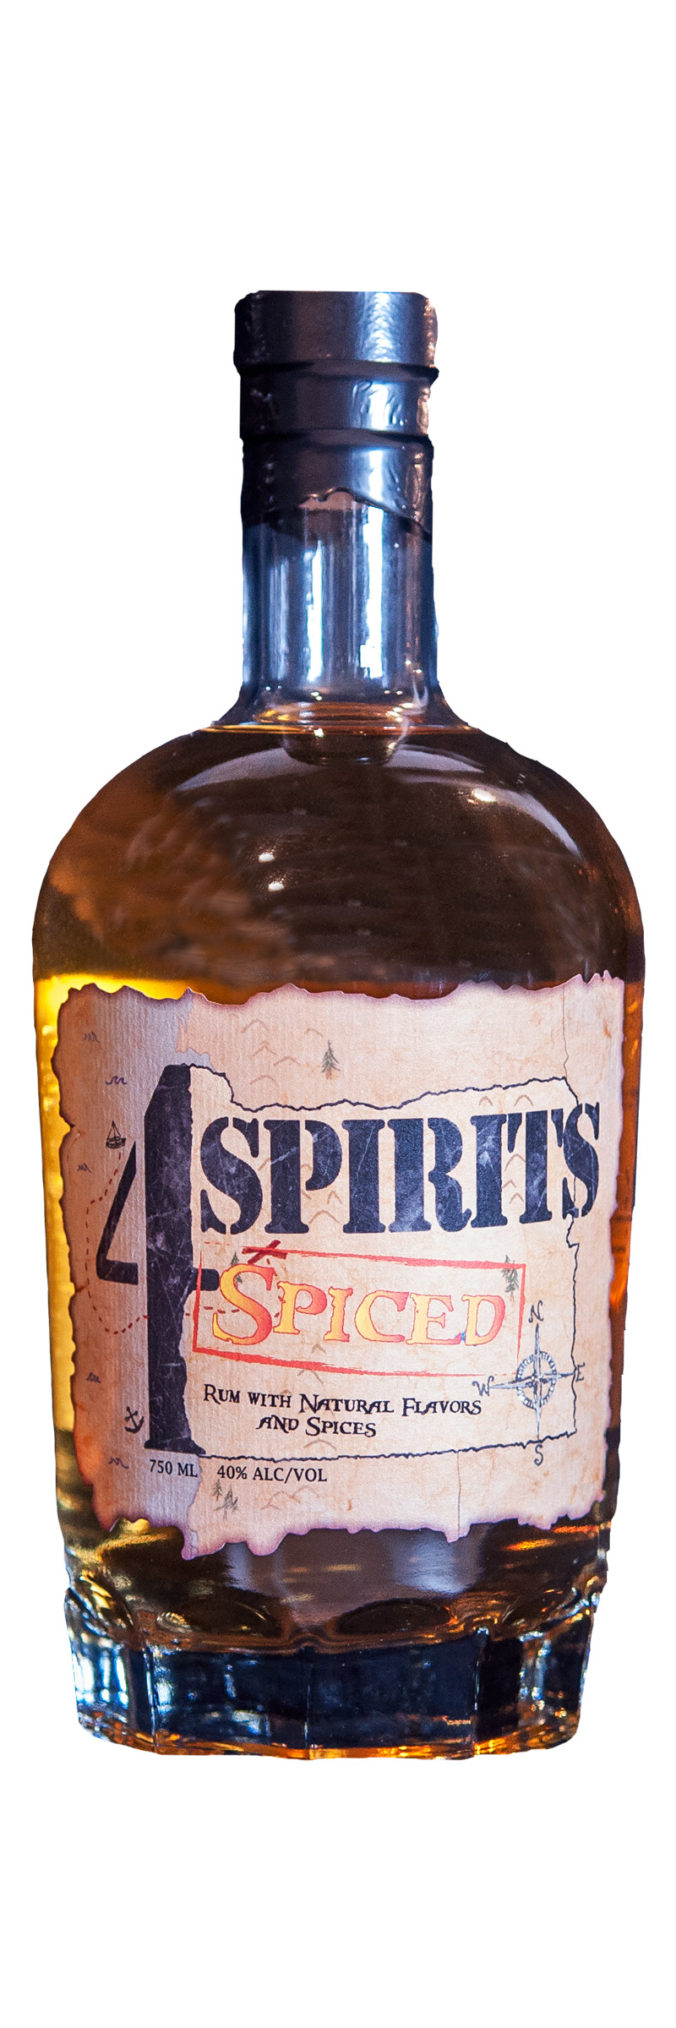 4 Spirits Spiced Rum from Oregon